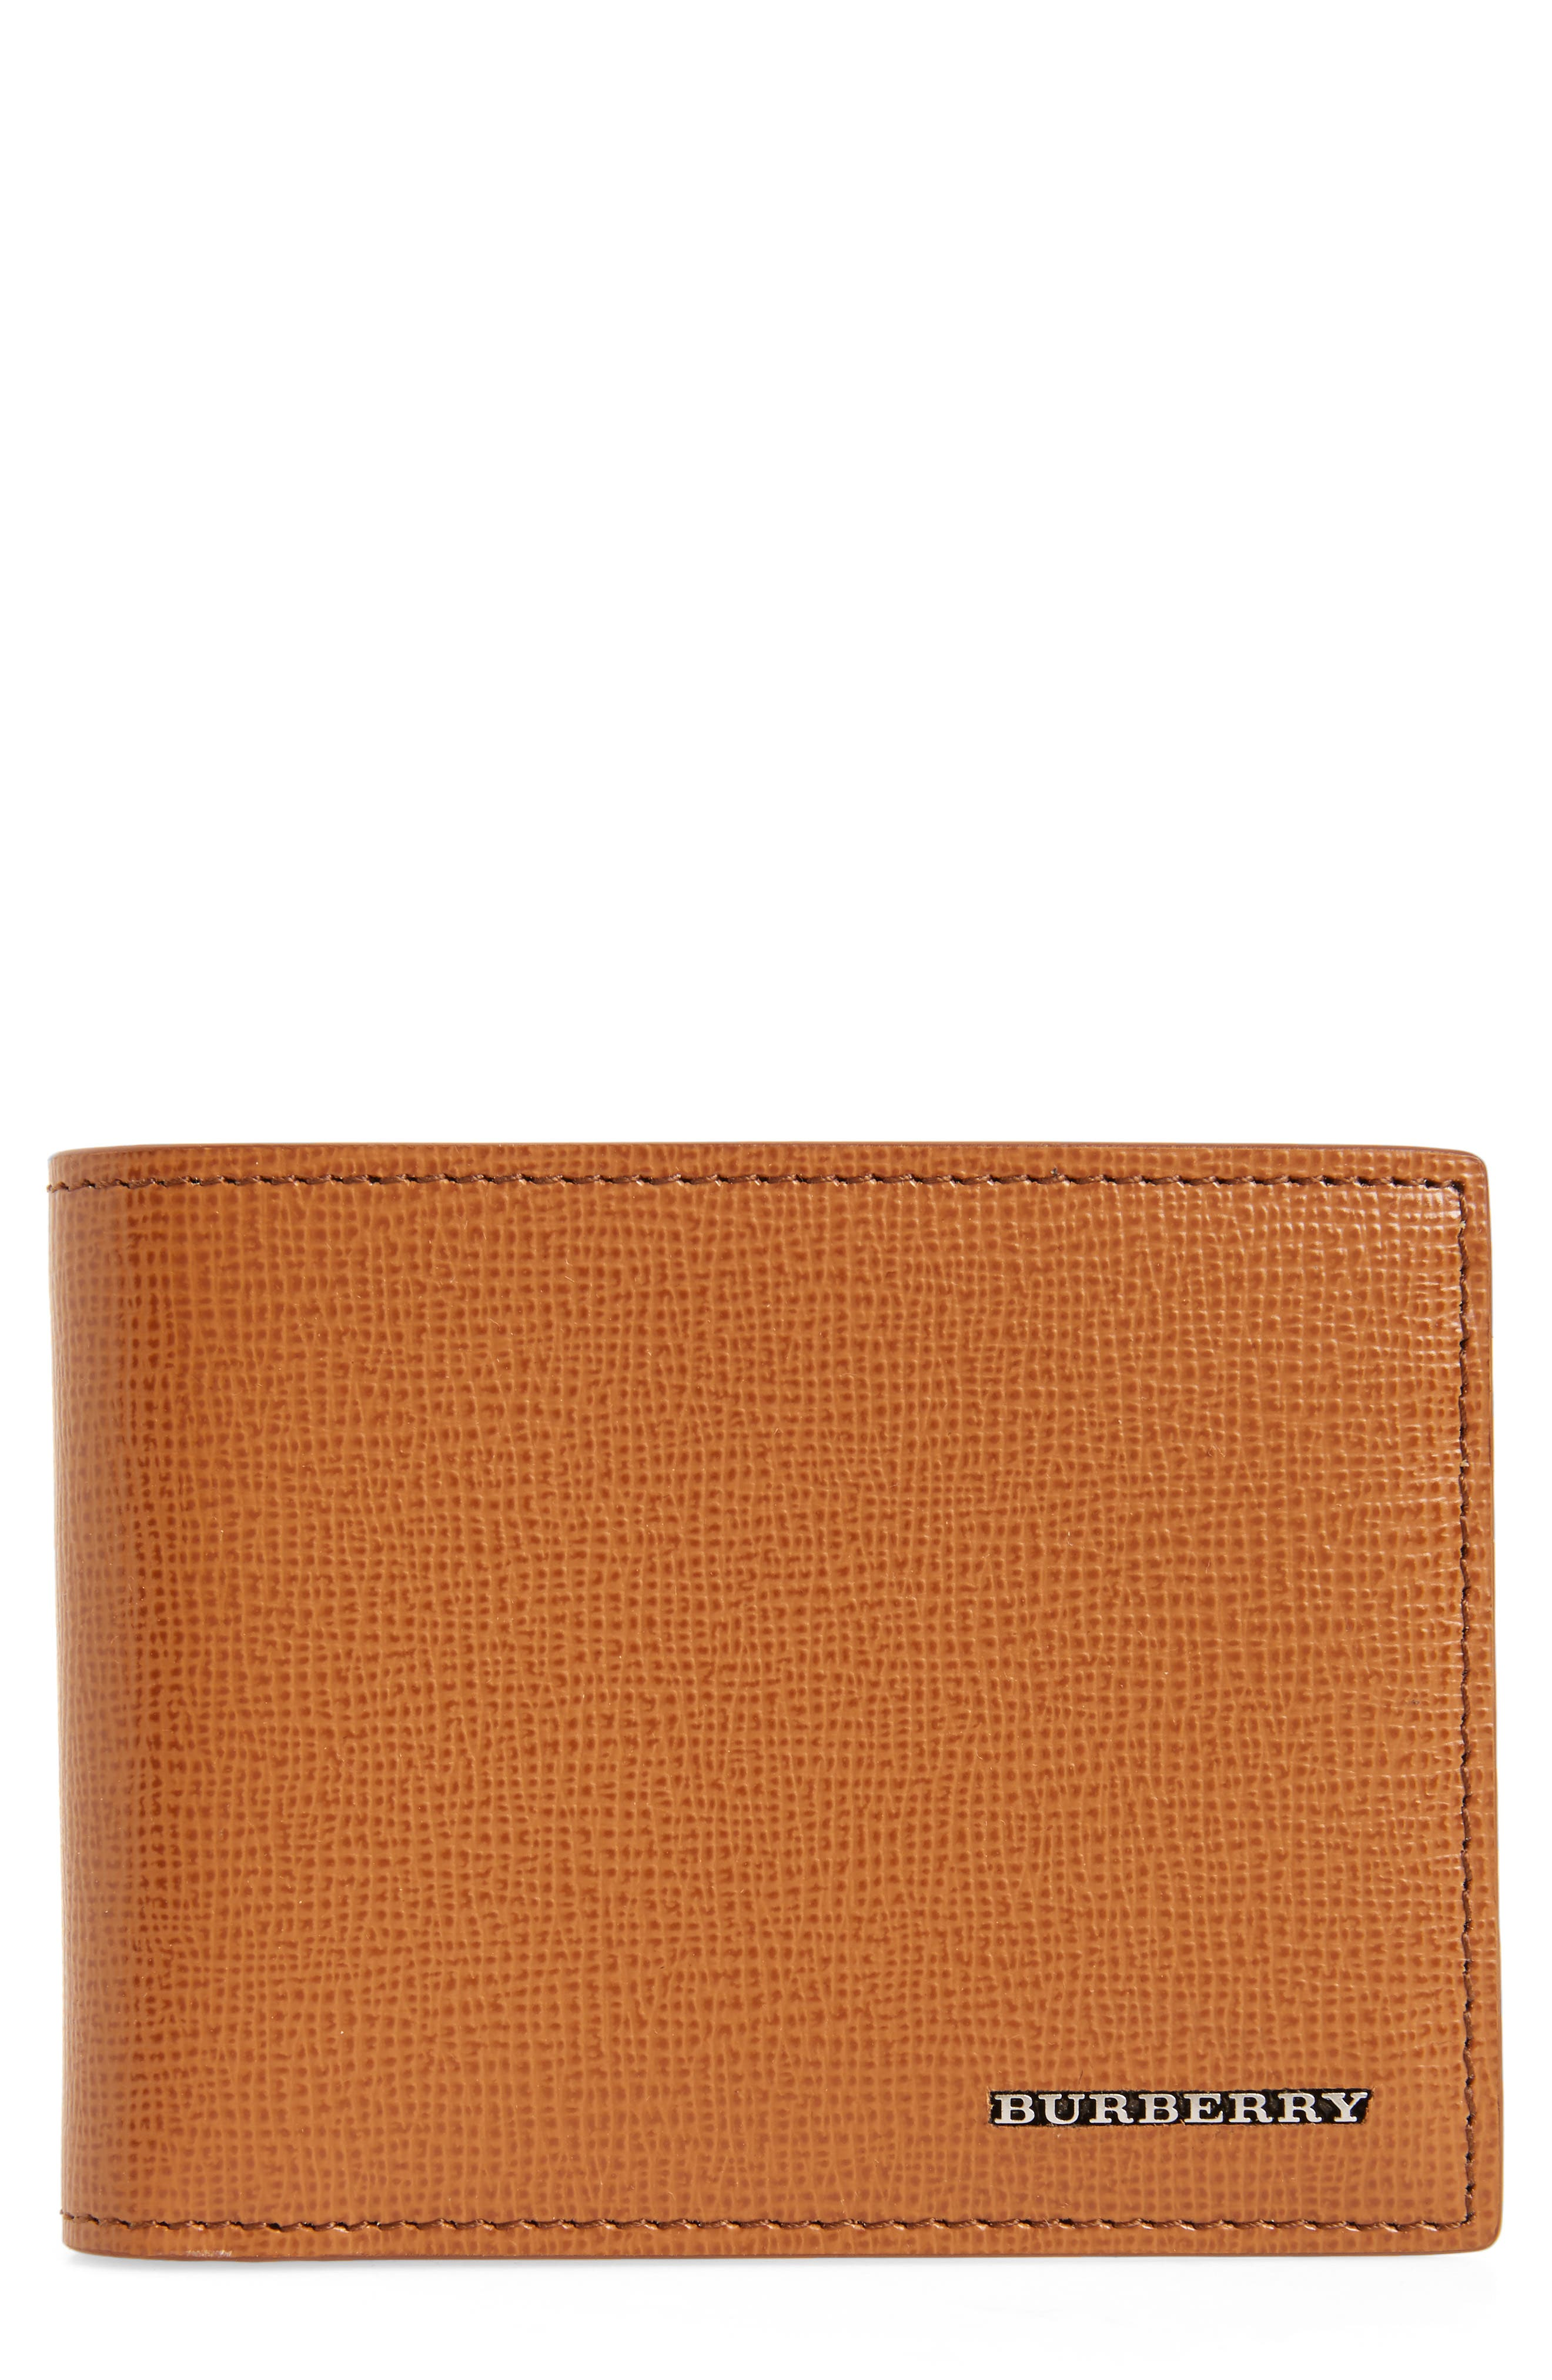 Leather Bifold Wallet,                             Main thumbnail 1, color,                             250